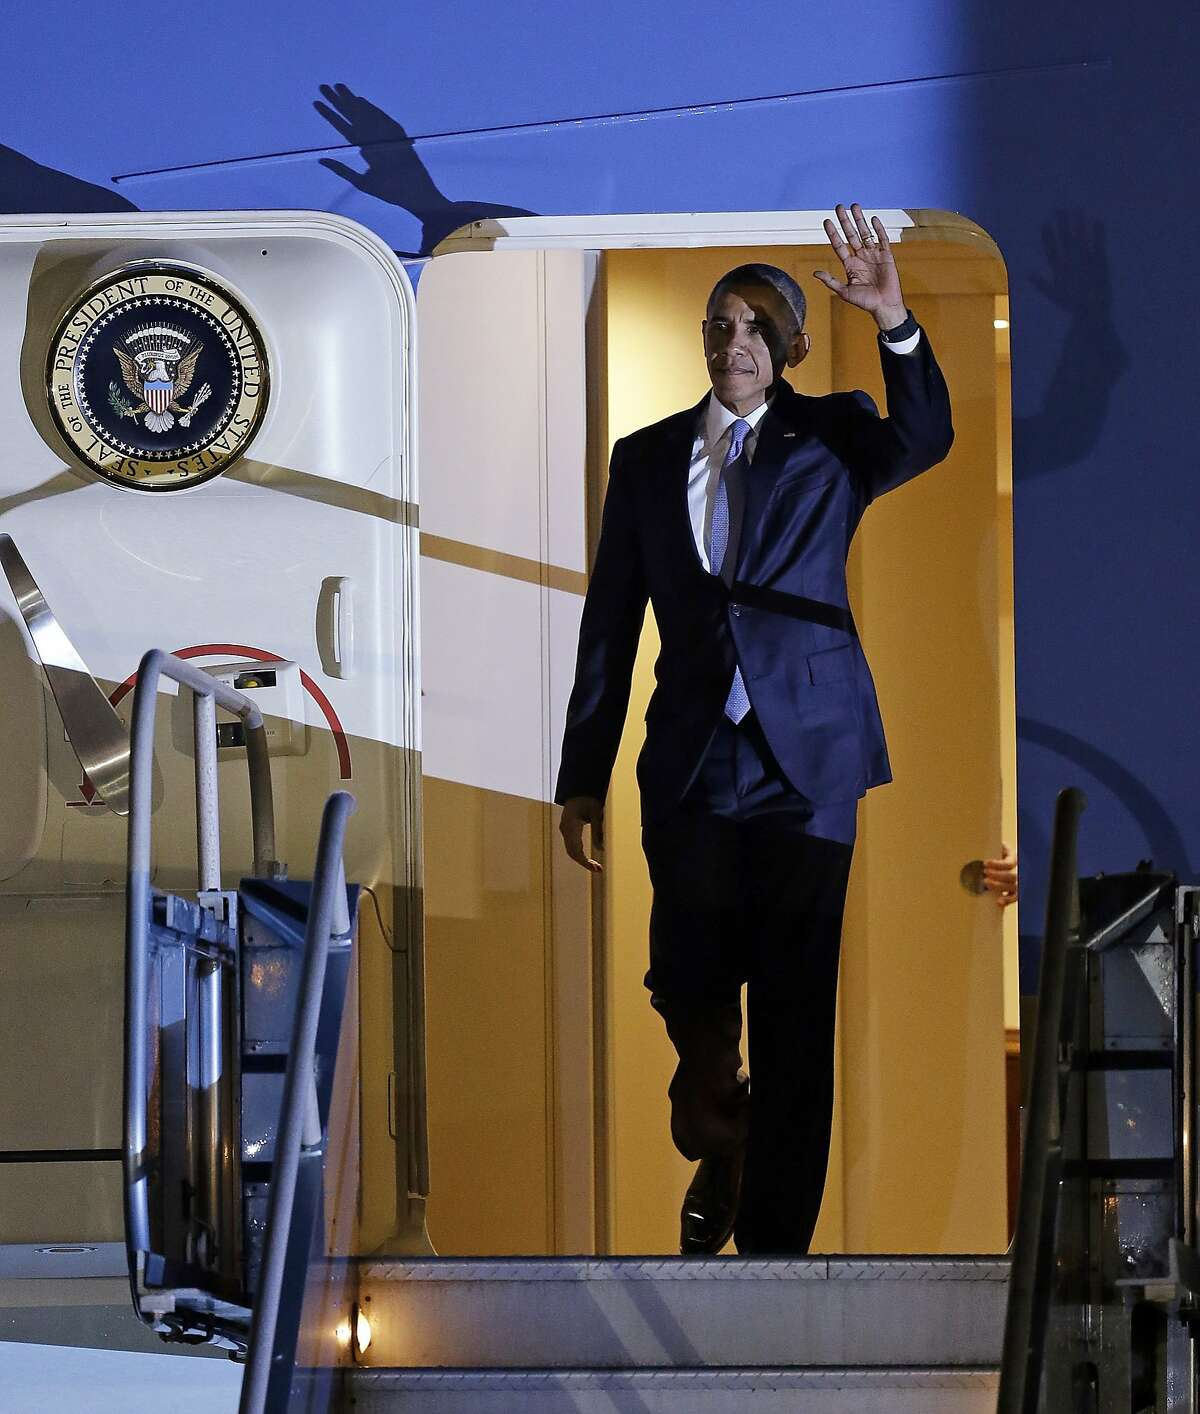 President Barack Obama waves as he exits Air Force One on Friday, Oct. 9, 2015, in San Francisco.